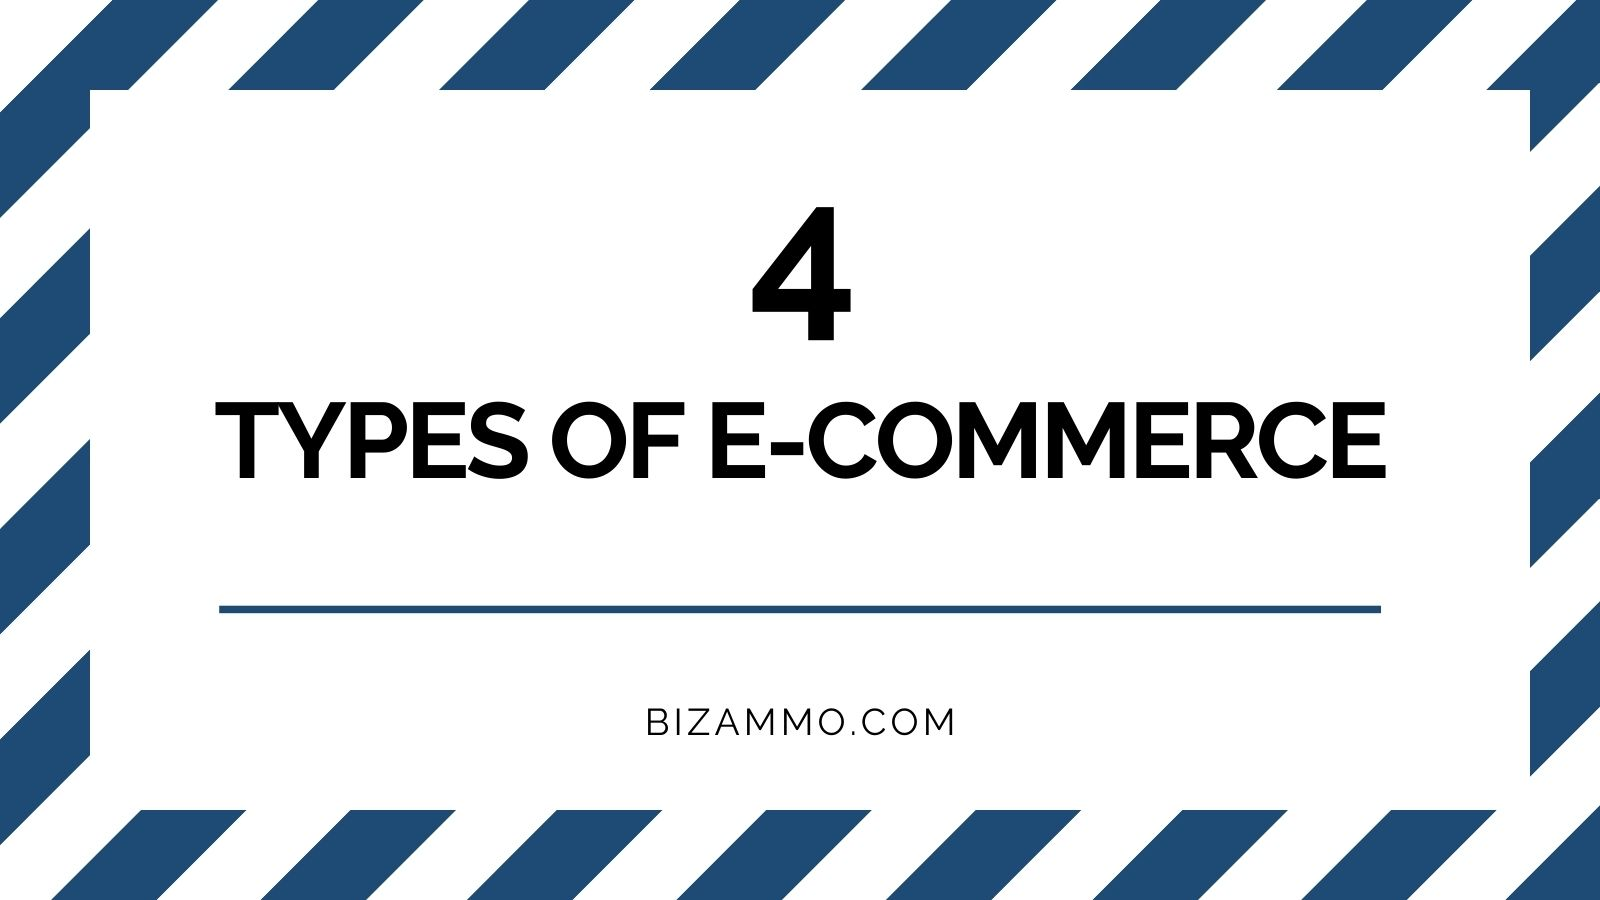 4 Types of E-commerce - BizAmmo.com